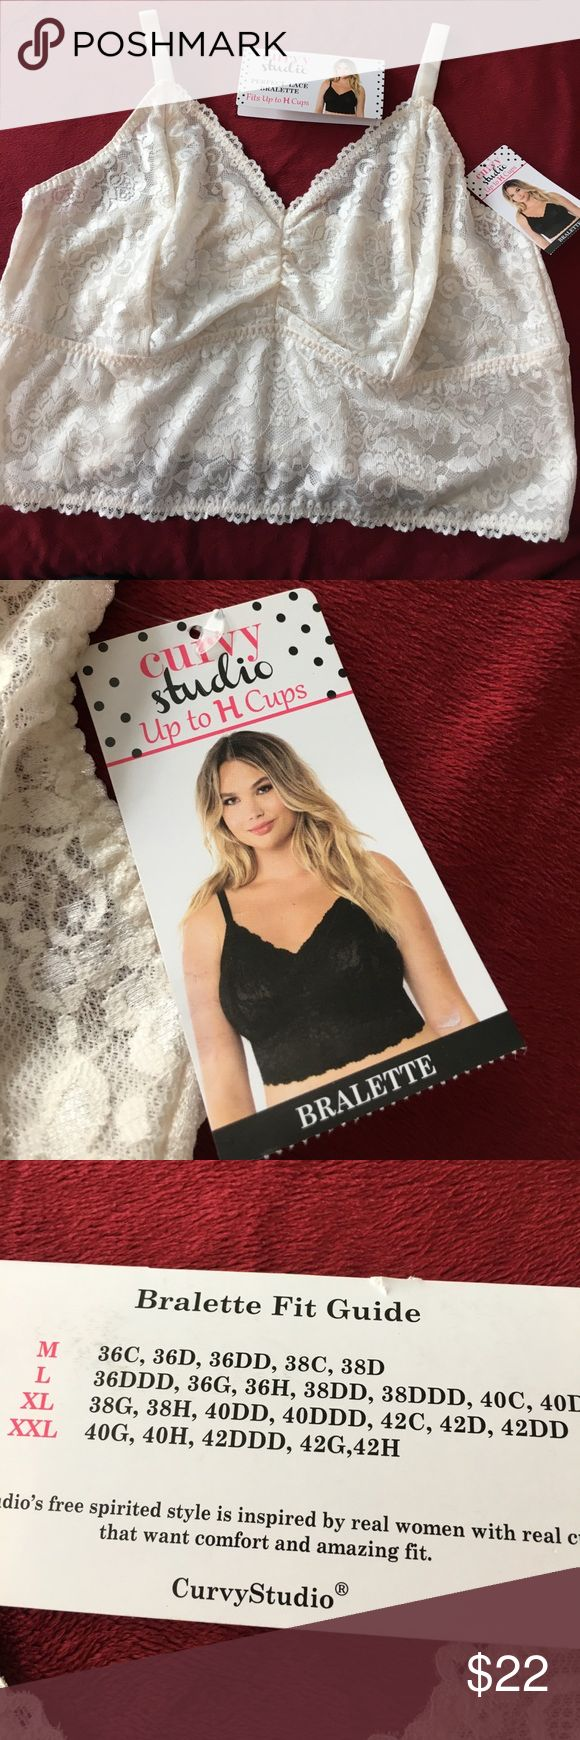 💥YOU ASKED! PLUS size 2XL Lace bralette to H cup! NWT Curvy Studio Long Line cream lace bralette 2XL fits to H cup! See chart pic for sizing. Lightly lined (no padding) Perfect Lace Bralette. Perfect for layering. Convertible Adjustable straps. Retail $34 Curvy Studio Intimates & Sleepwear Bras